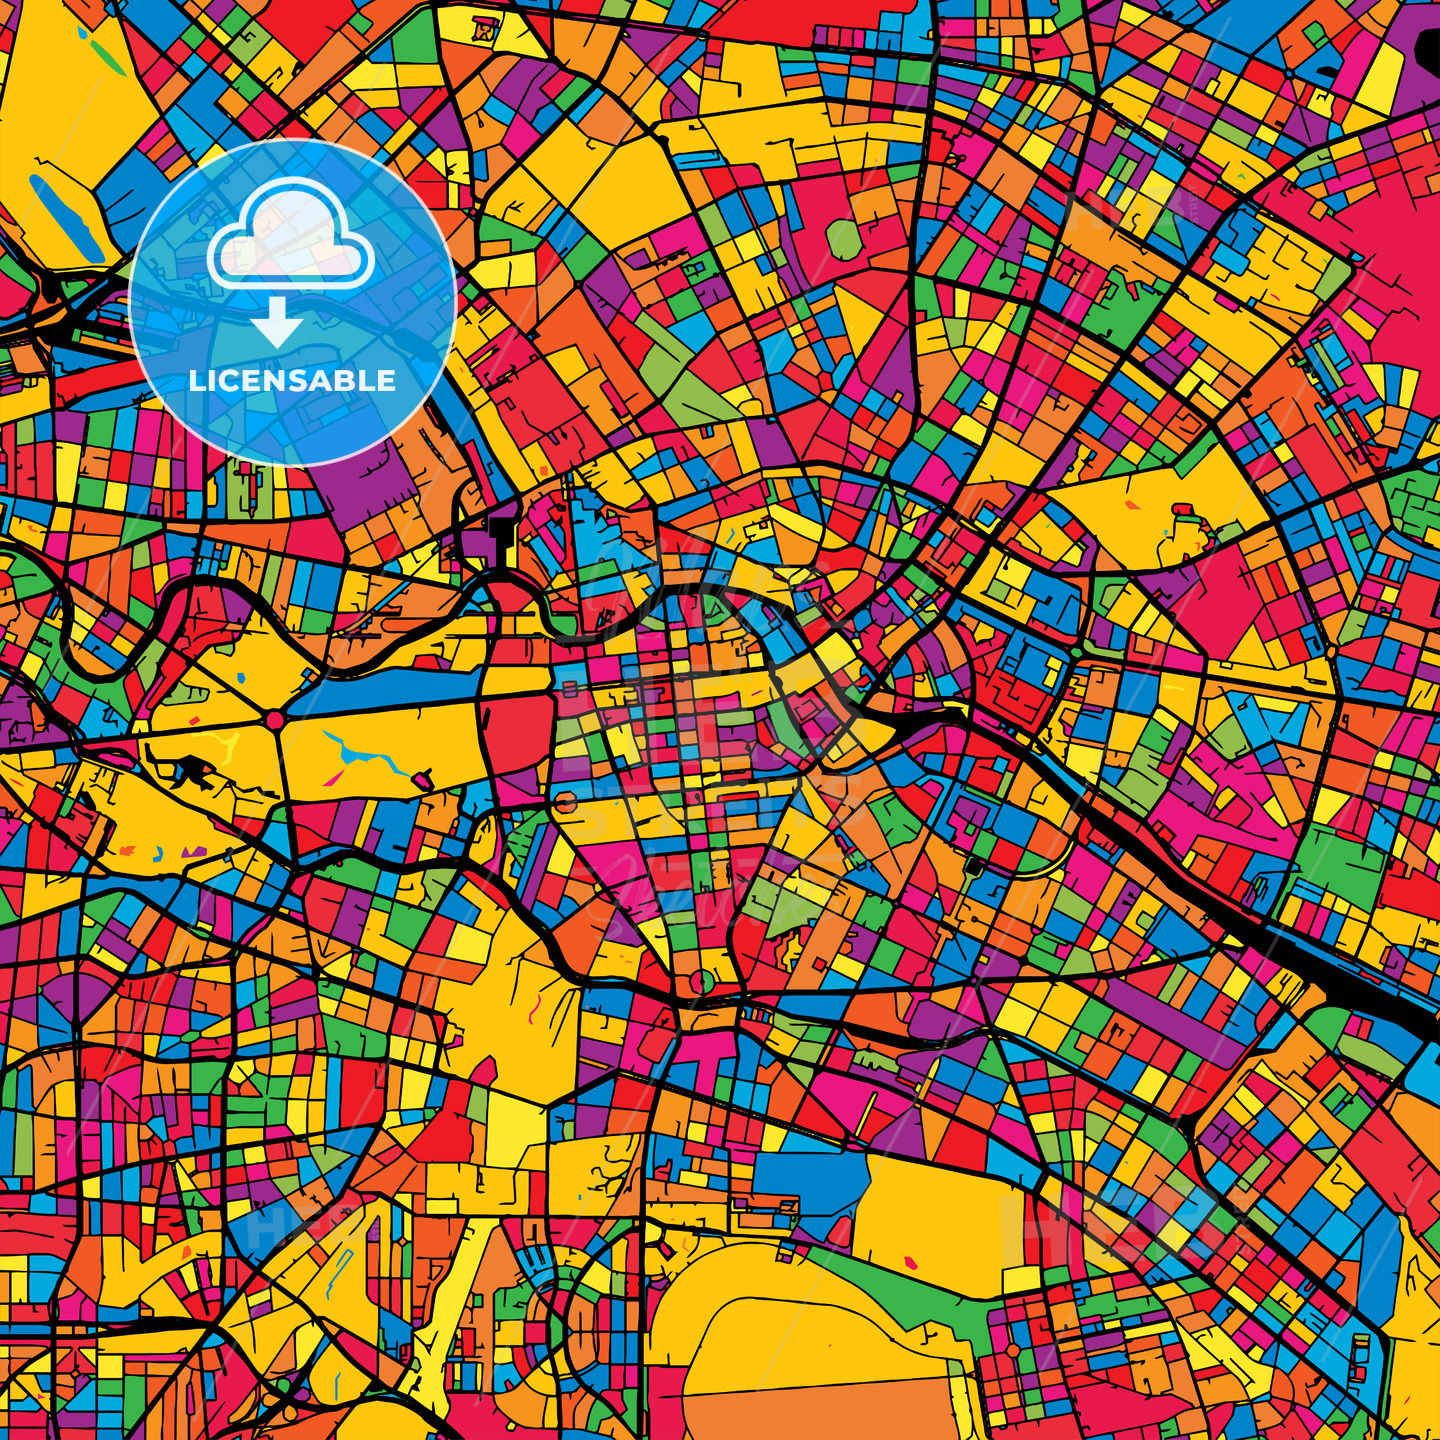 Berlin Germany Colorful Map - HEBSTREIT's Sketches